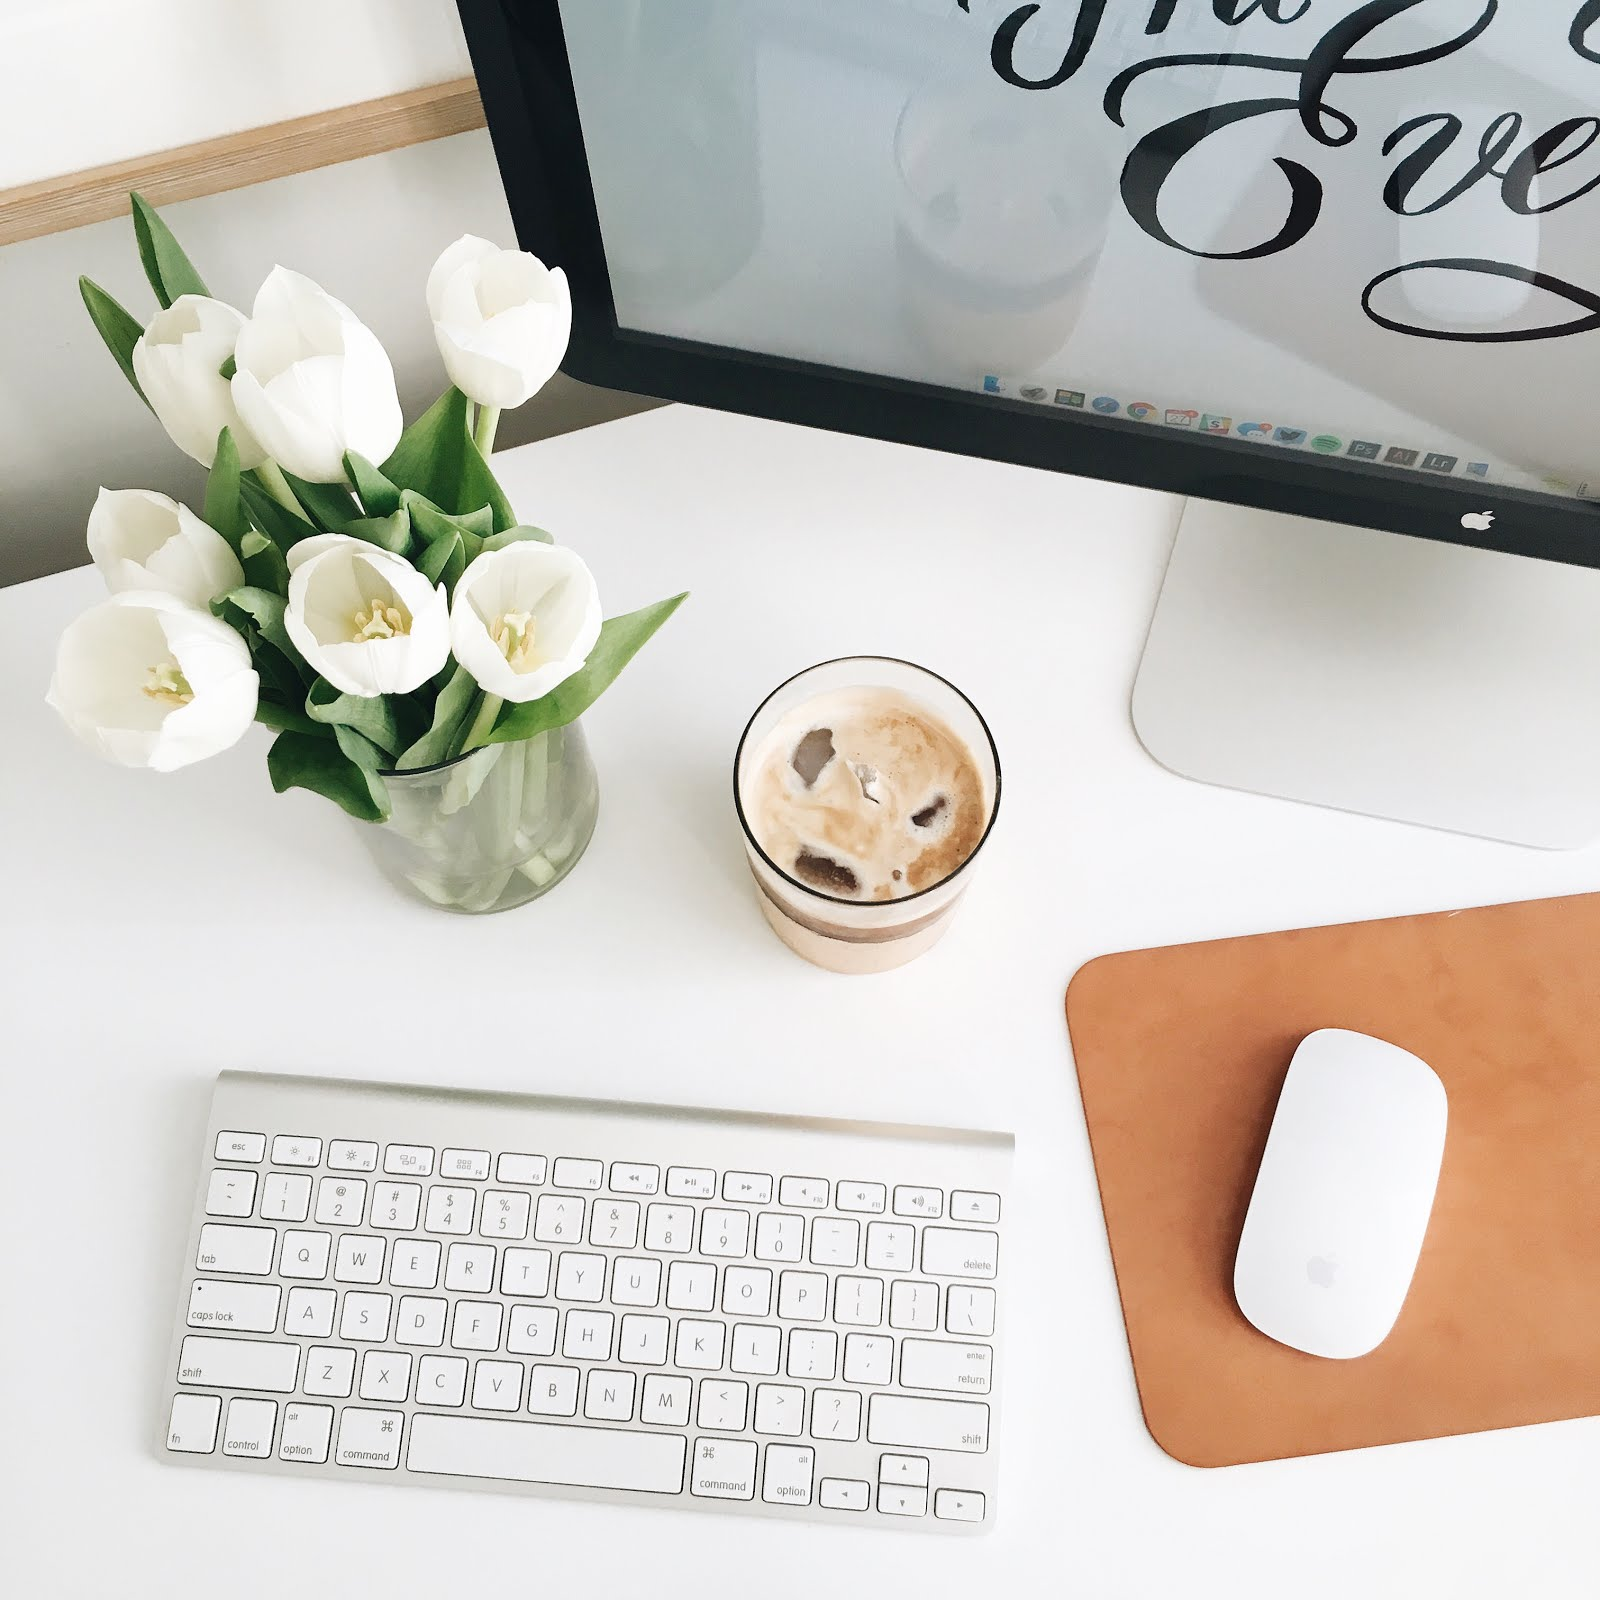 danielle moss office, desk, neutrals, white desk, iced coffee, ravacholle belgium based lifestyle blog